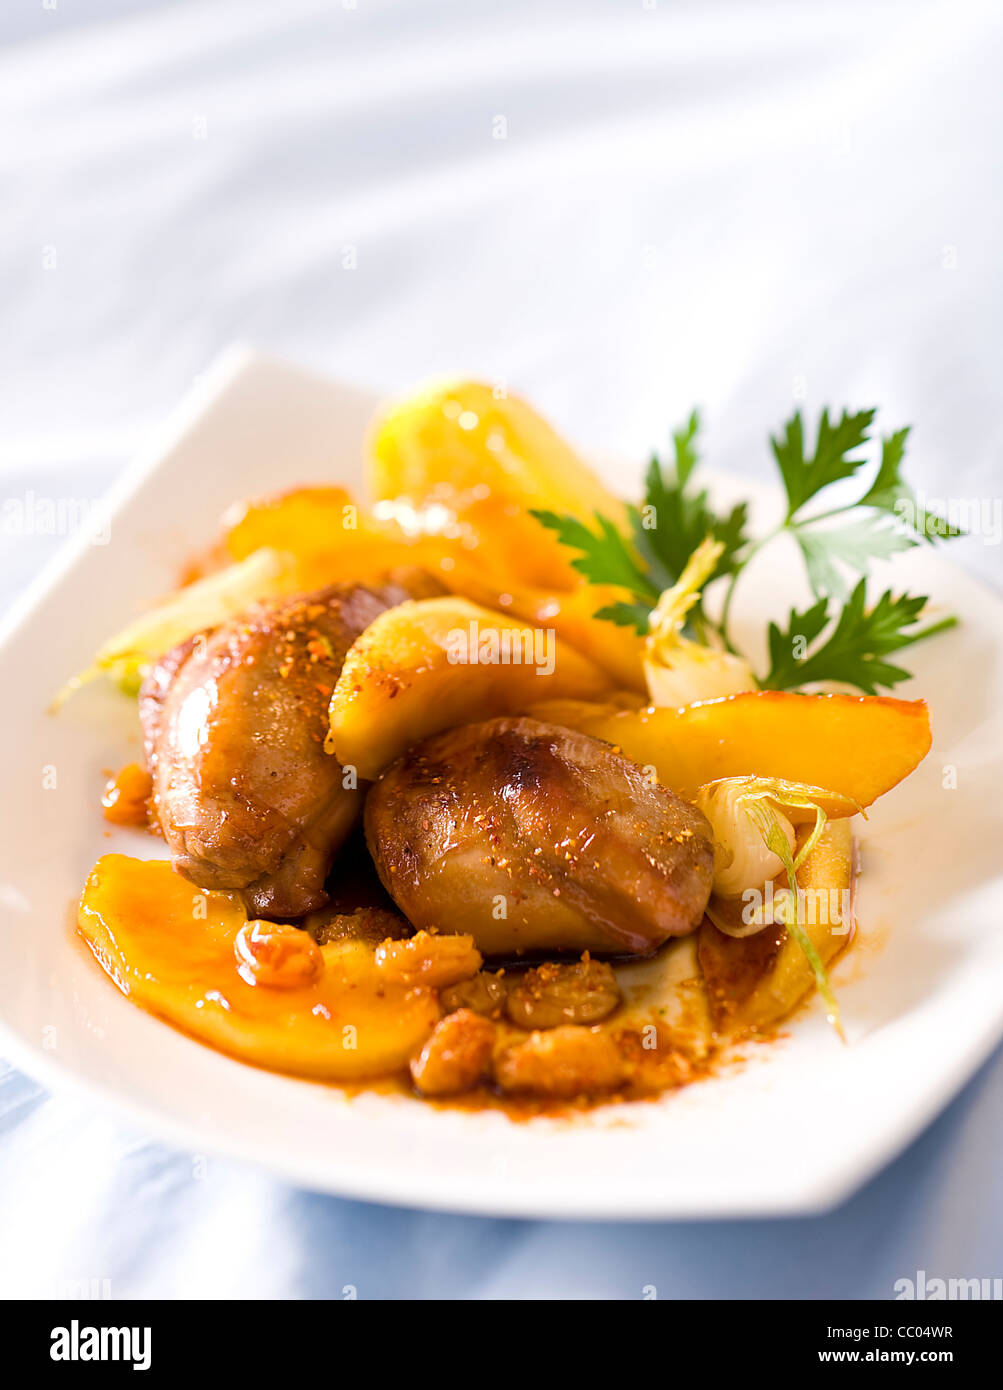 Apple and Spices Lamb Tajine - Stock Image